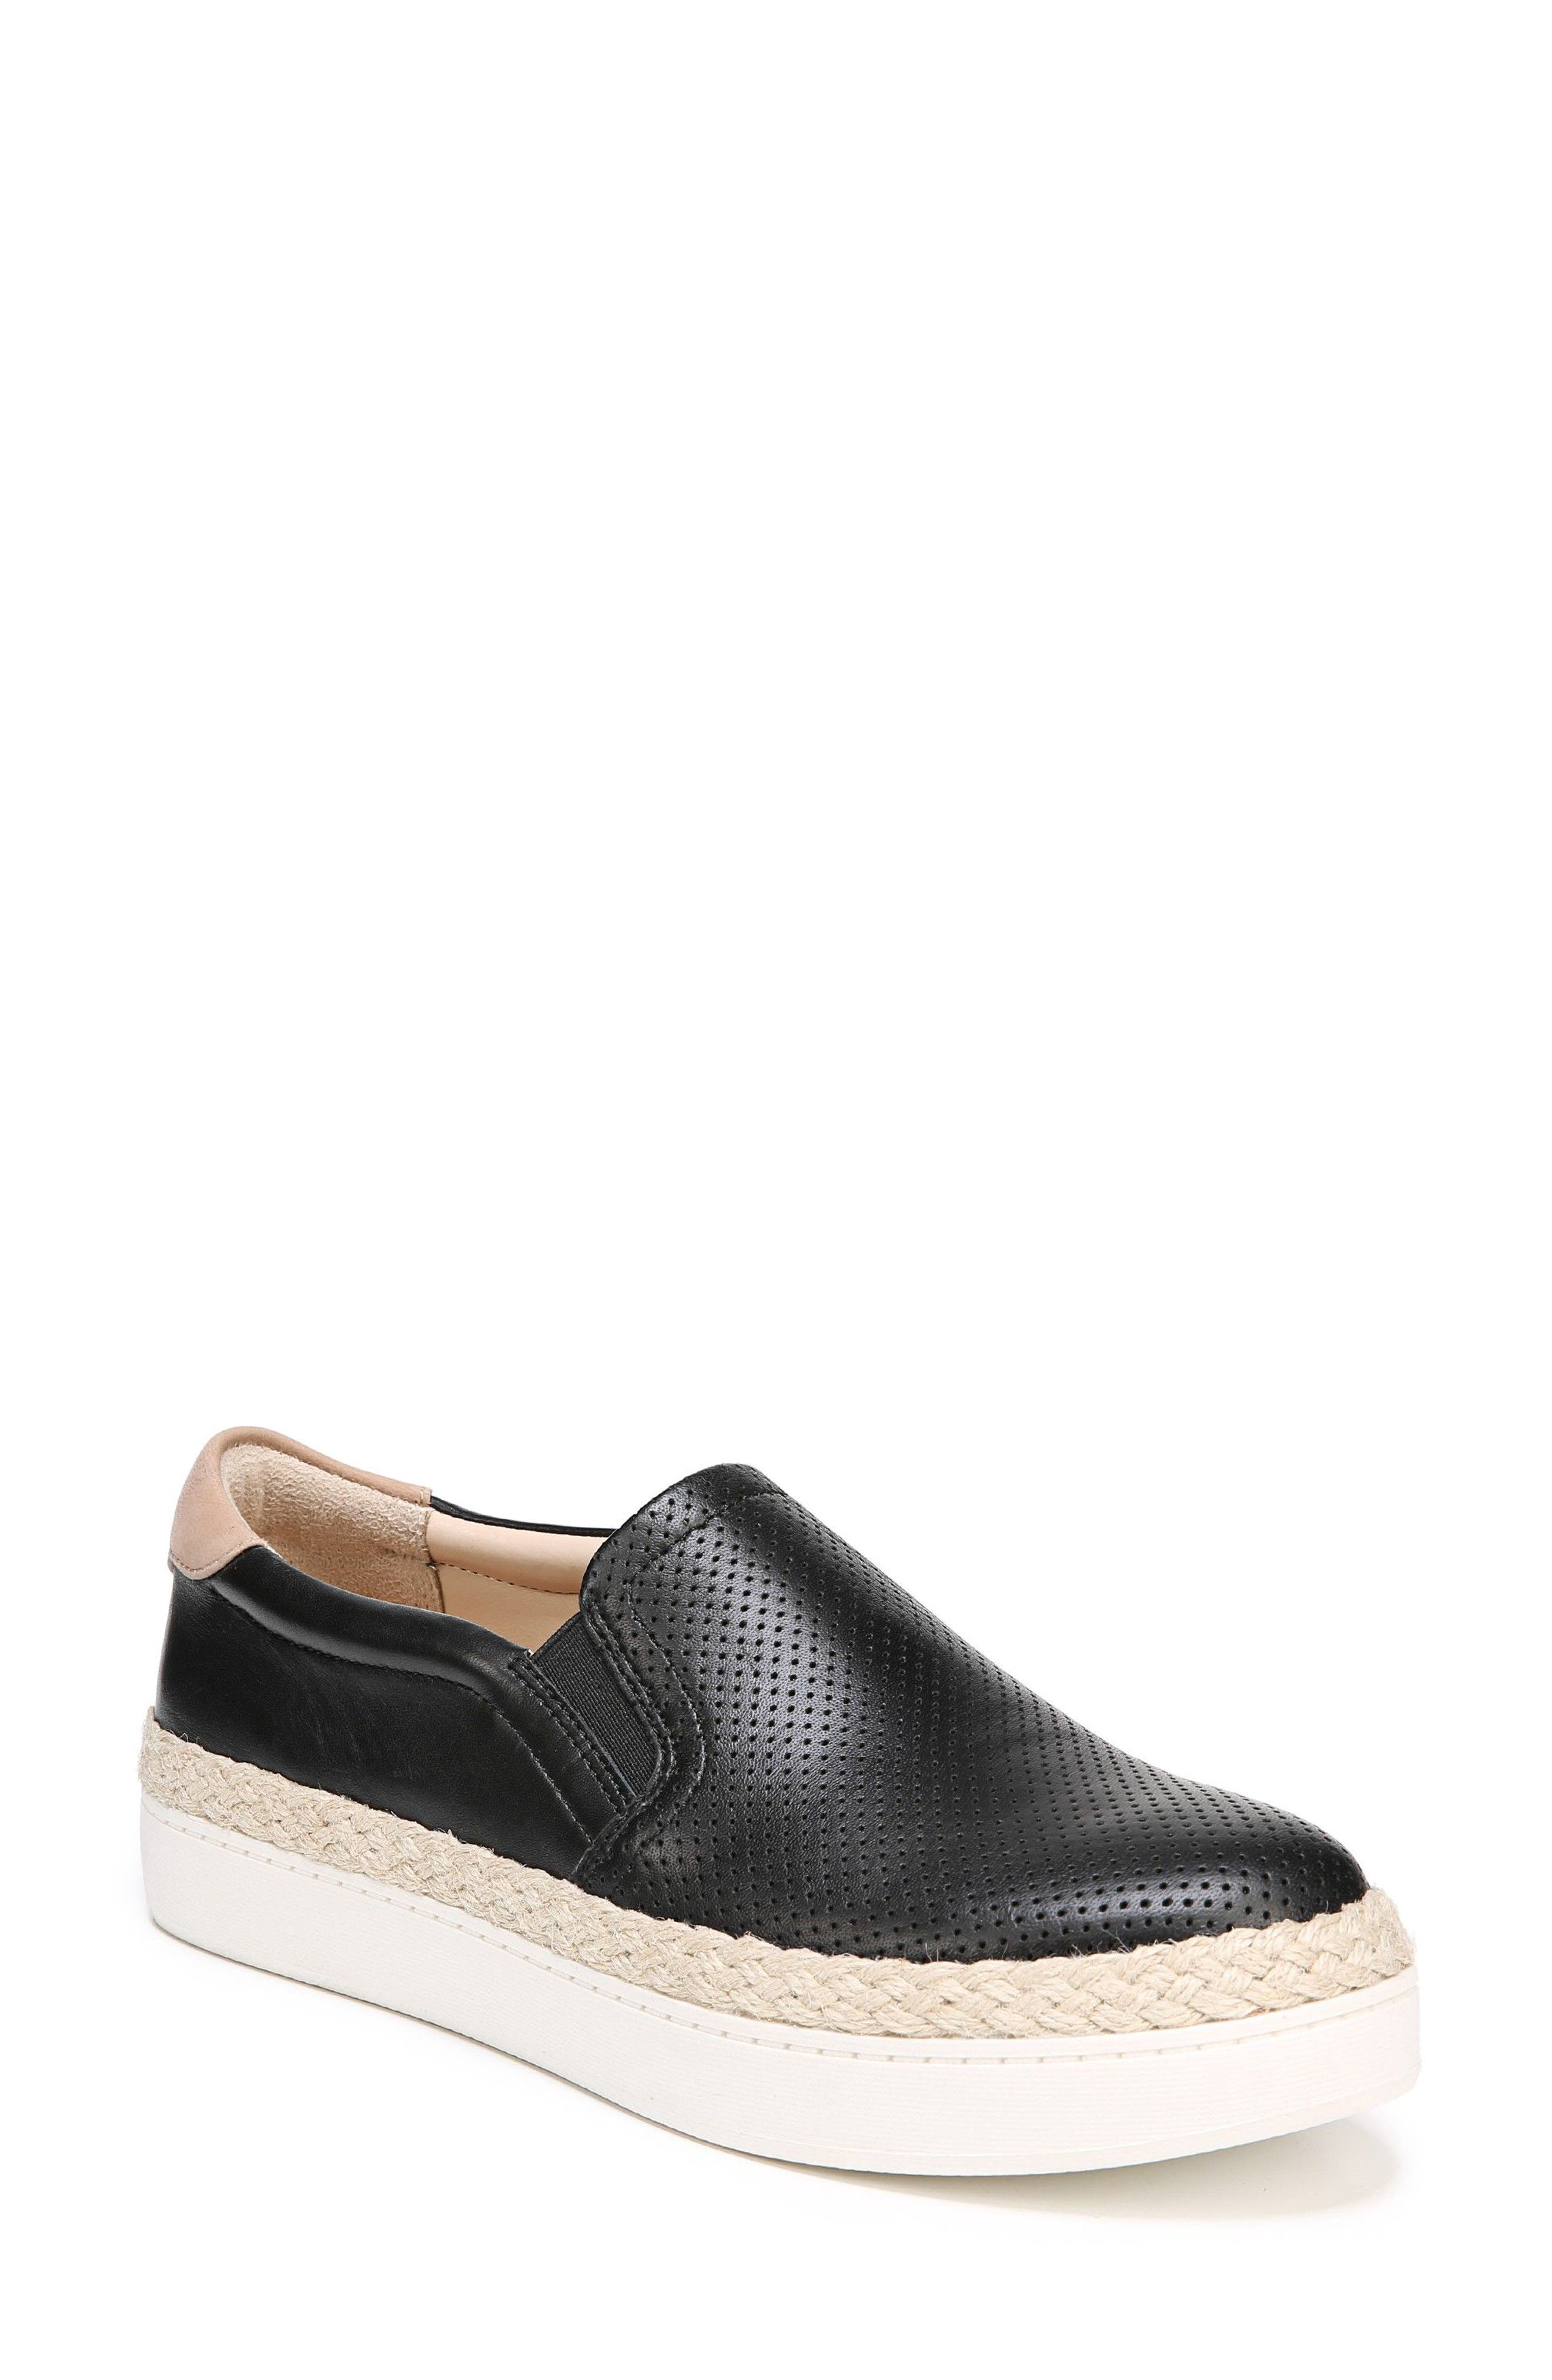 DR. SCHOLL'S, Scout Slip-On Sneaker, Main thumbnail 1, color, BLACK LEATHER